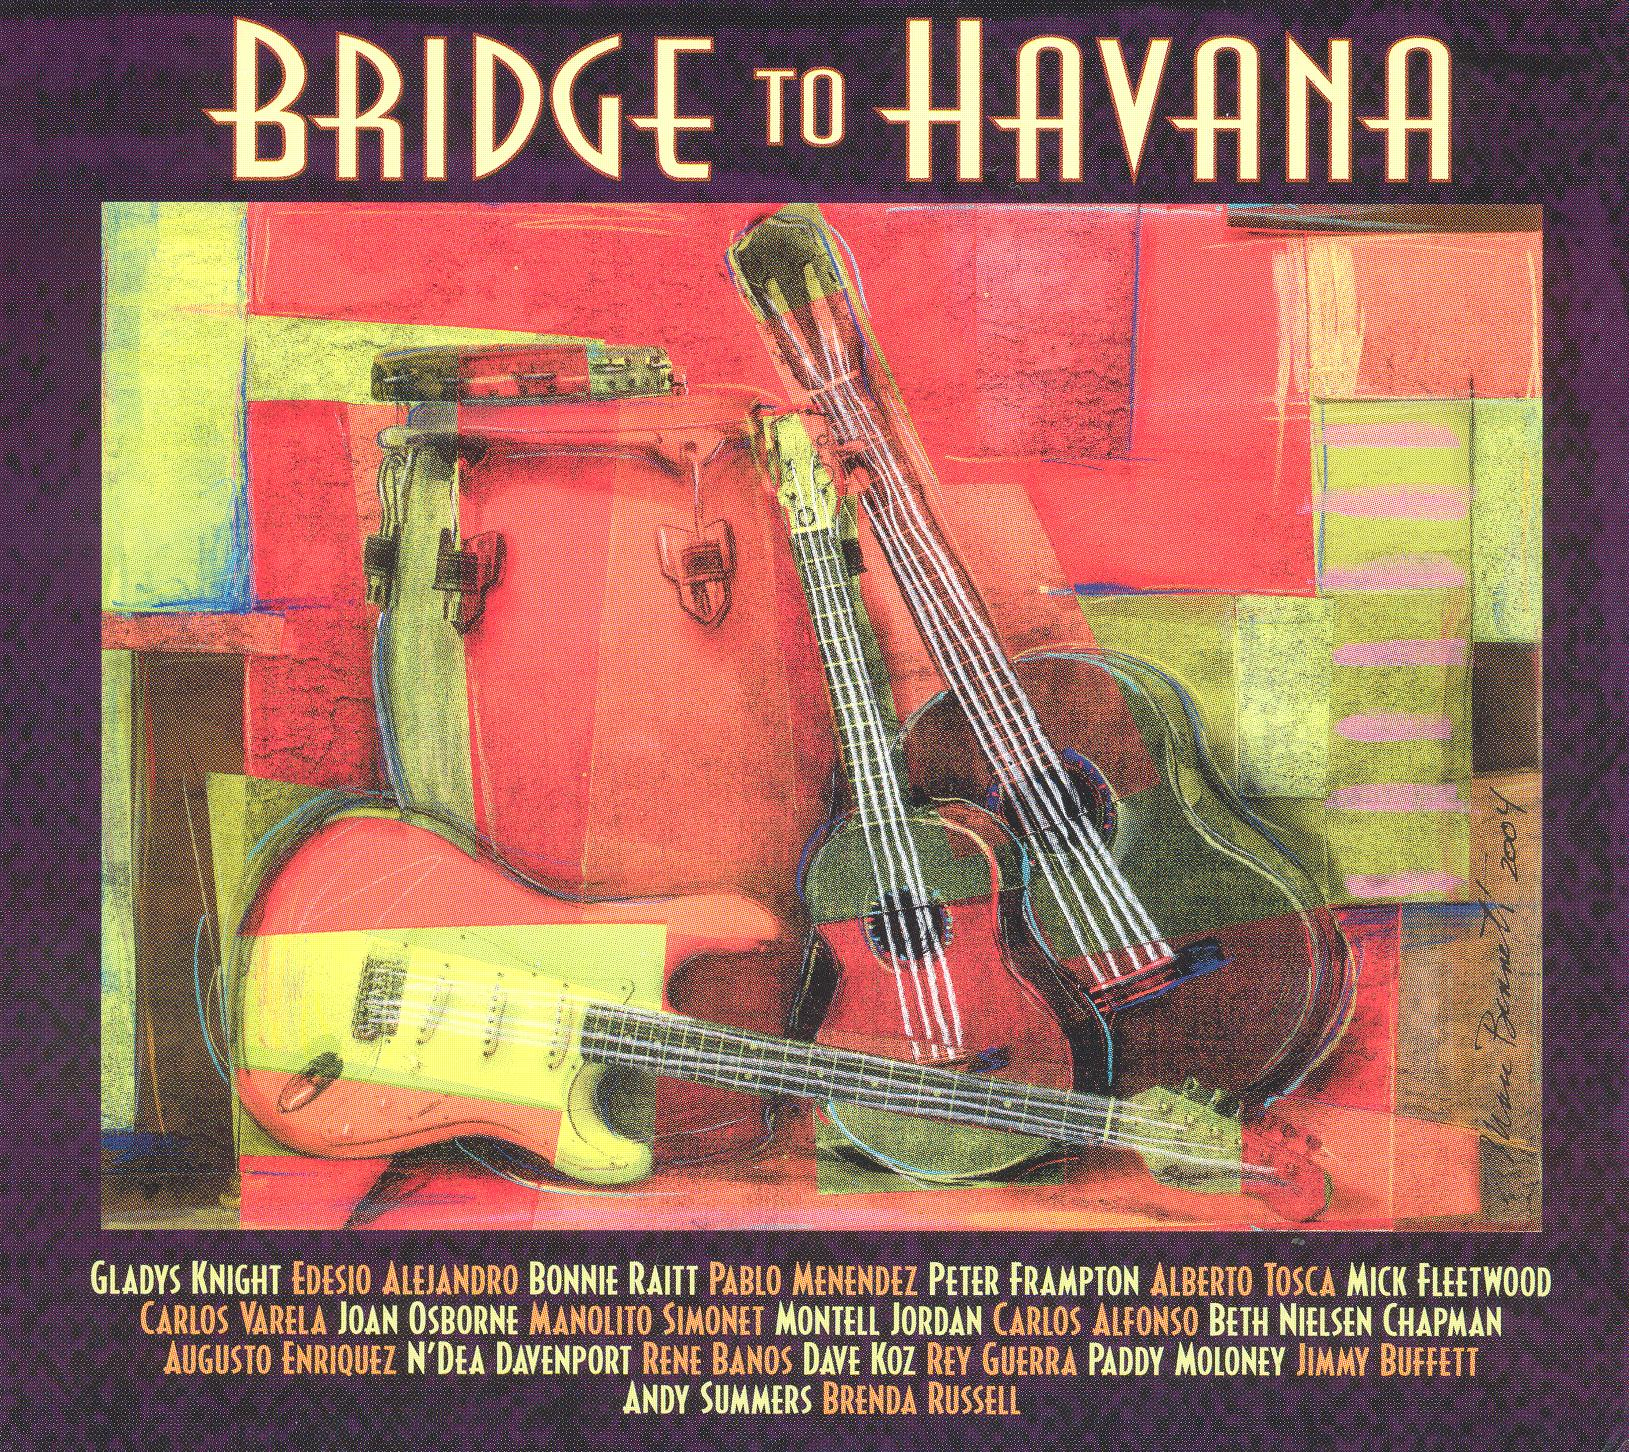 Bridge to Havana